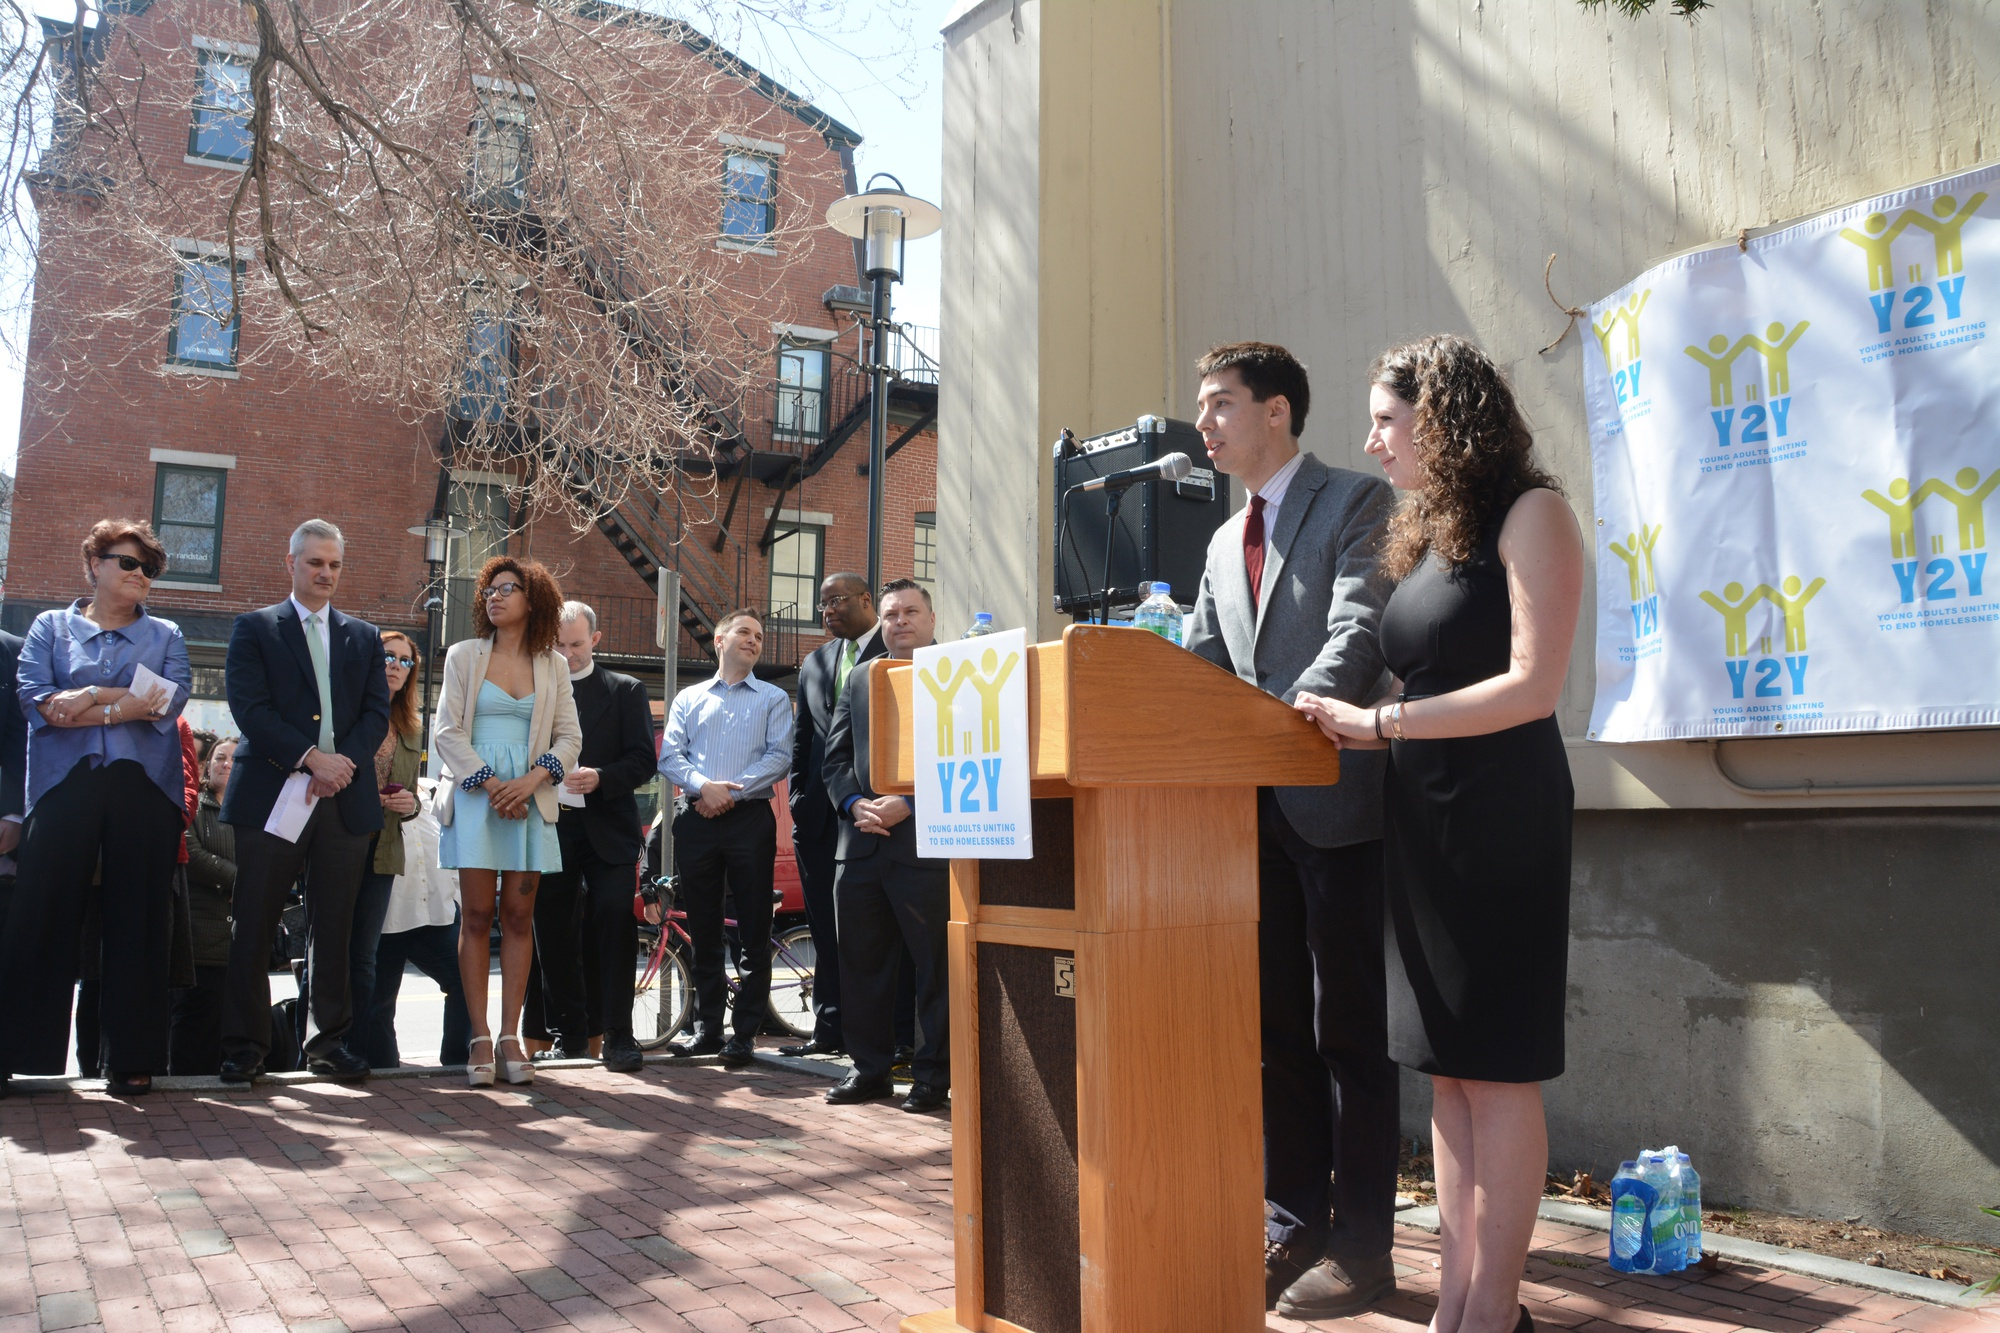 Samuel G. Greenberg '14 and Sarah A. Rosenkrantz '14, speak at the Y2Y youth homeless shelter launch event outside First Parish in Cambridge Monday. The shelter is set to open this November.